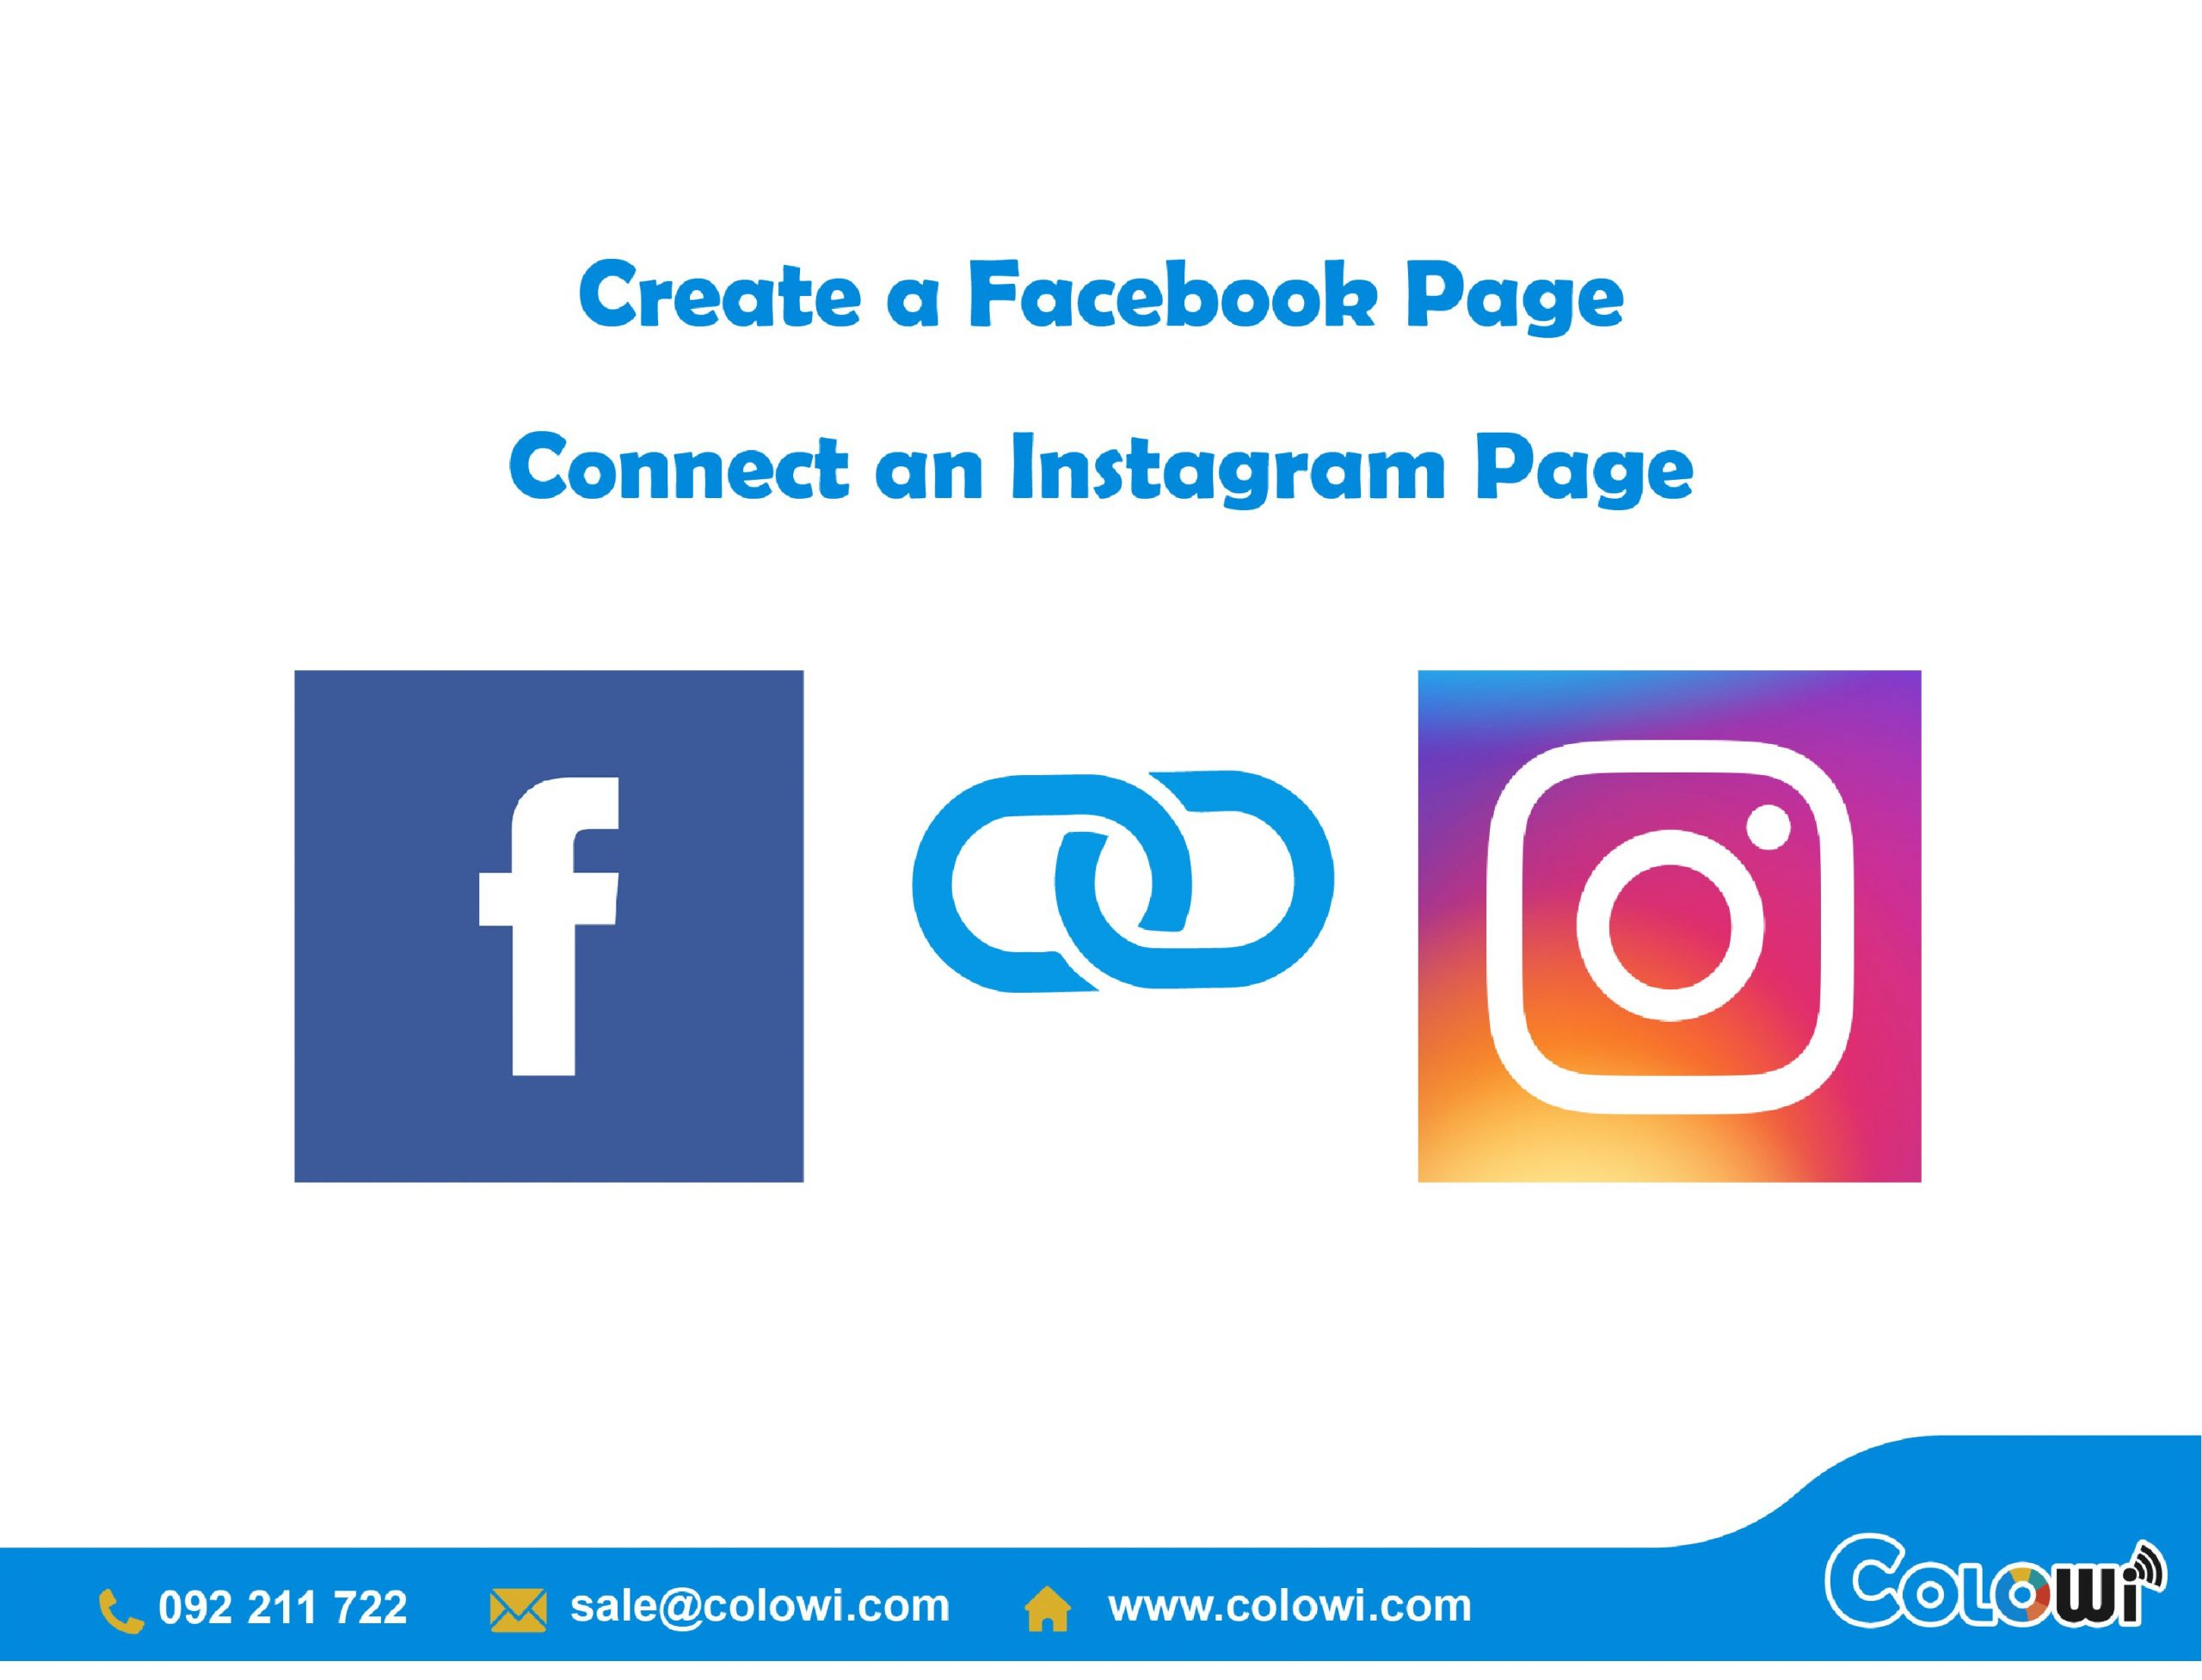 HOW TO CREATE A FACEBOOK PAGE WITH INSTAGRAM PAGE